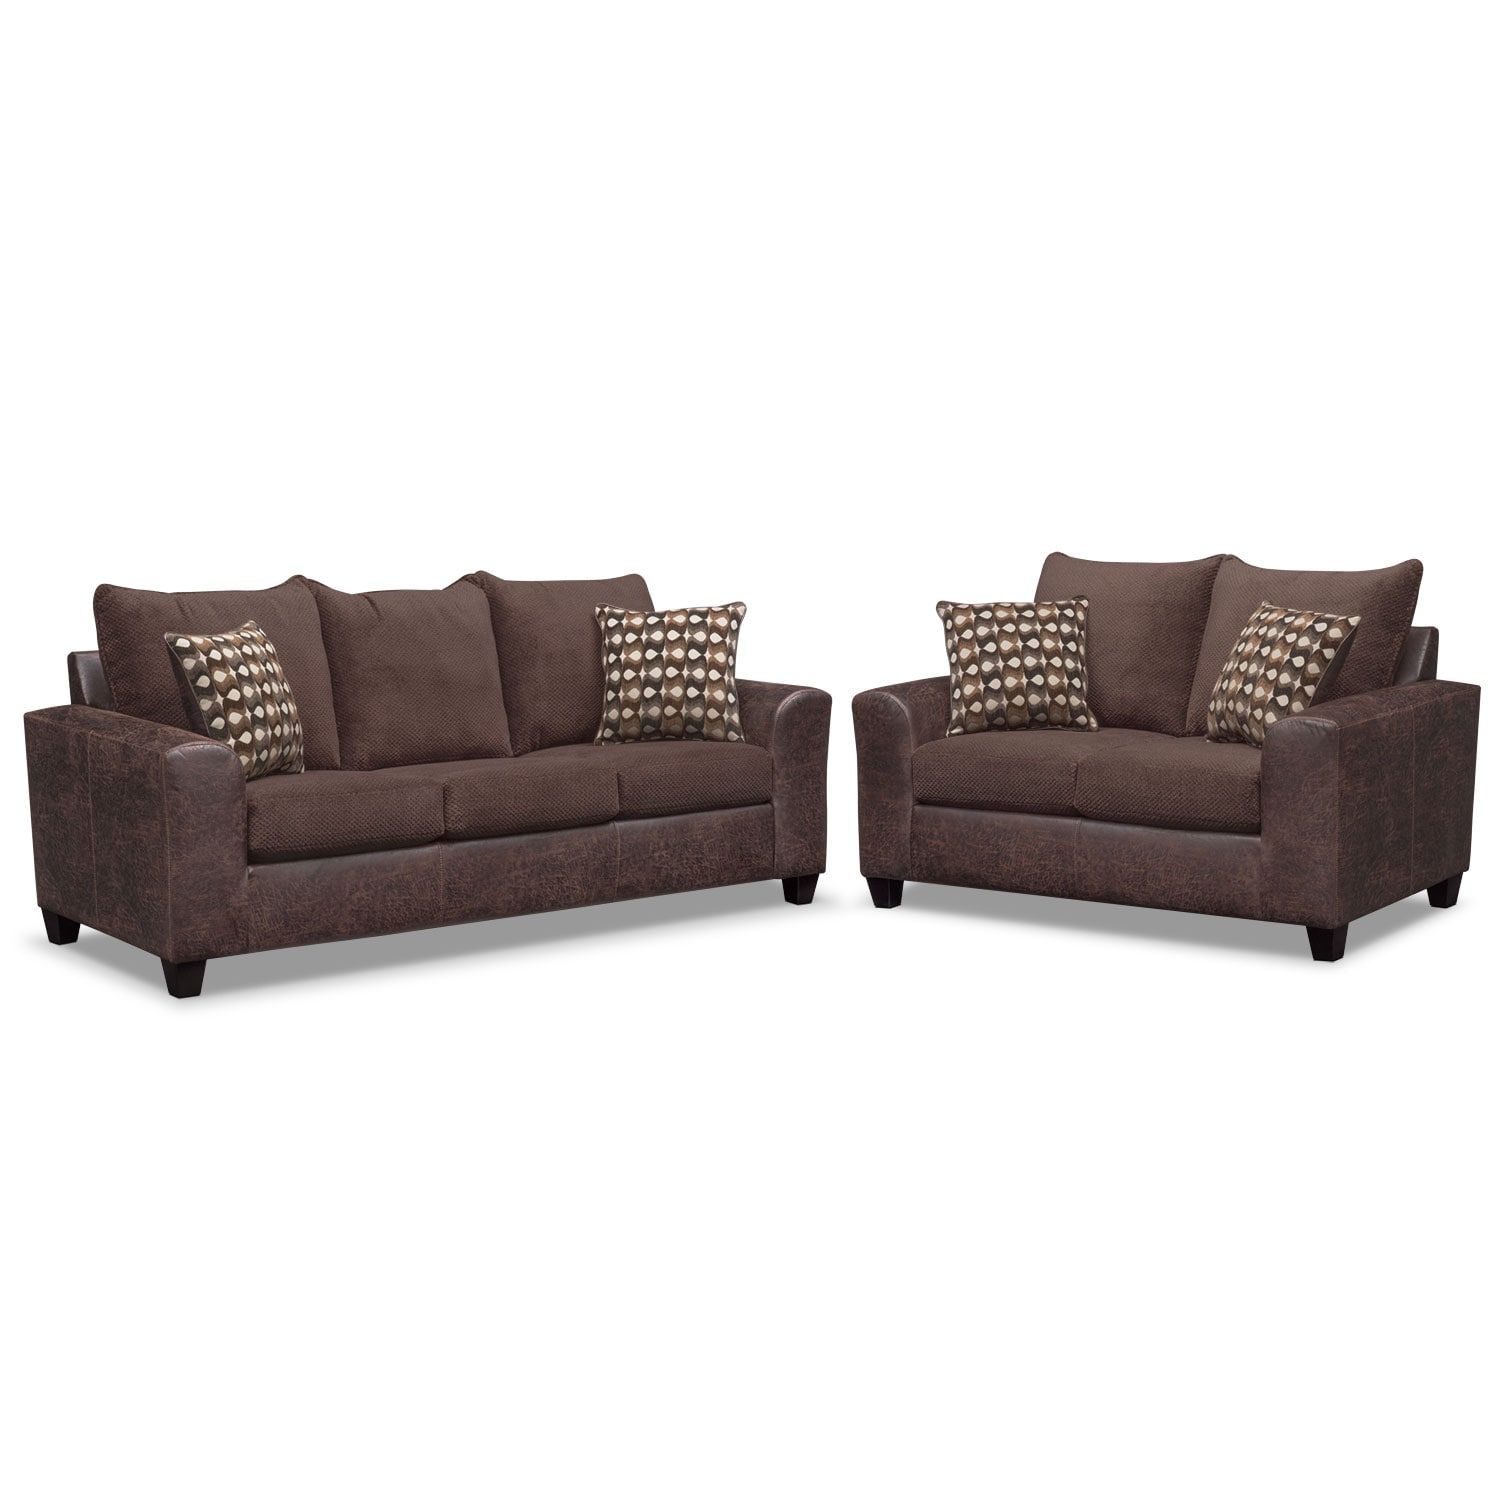 Living Room Furniture - Brando Queen Innerspring Sleeper Sofa and Loveseat Set - Chocolate